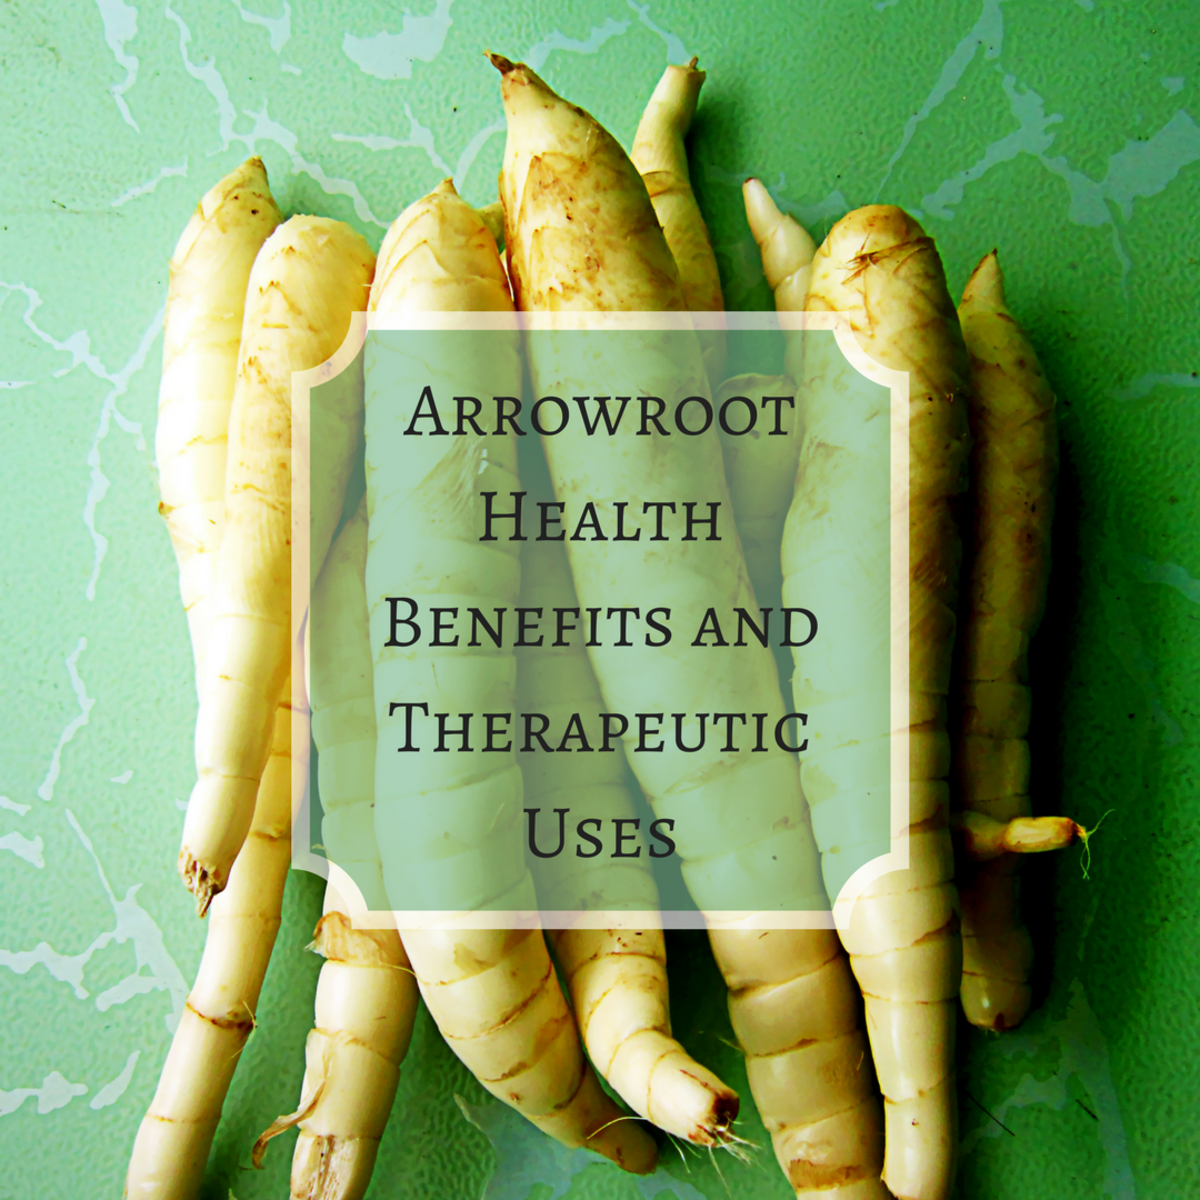 Arrowroot is used in a variety of foods and products worldwide.